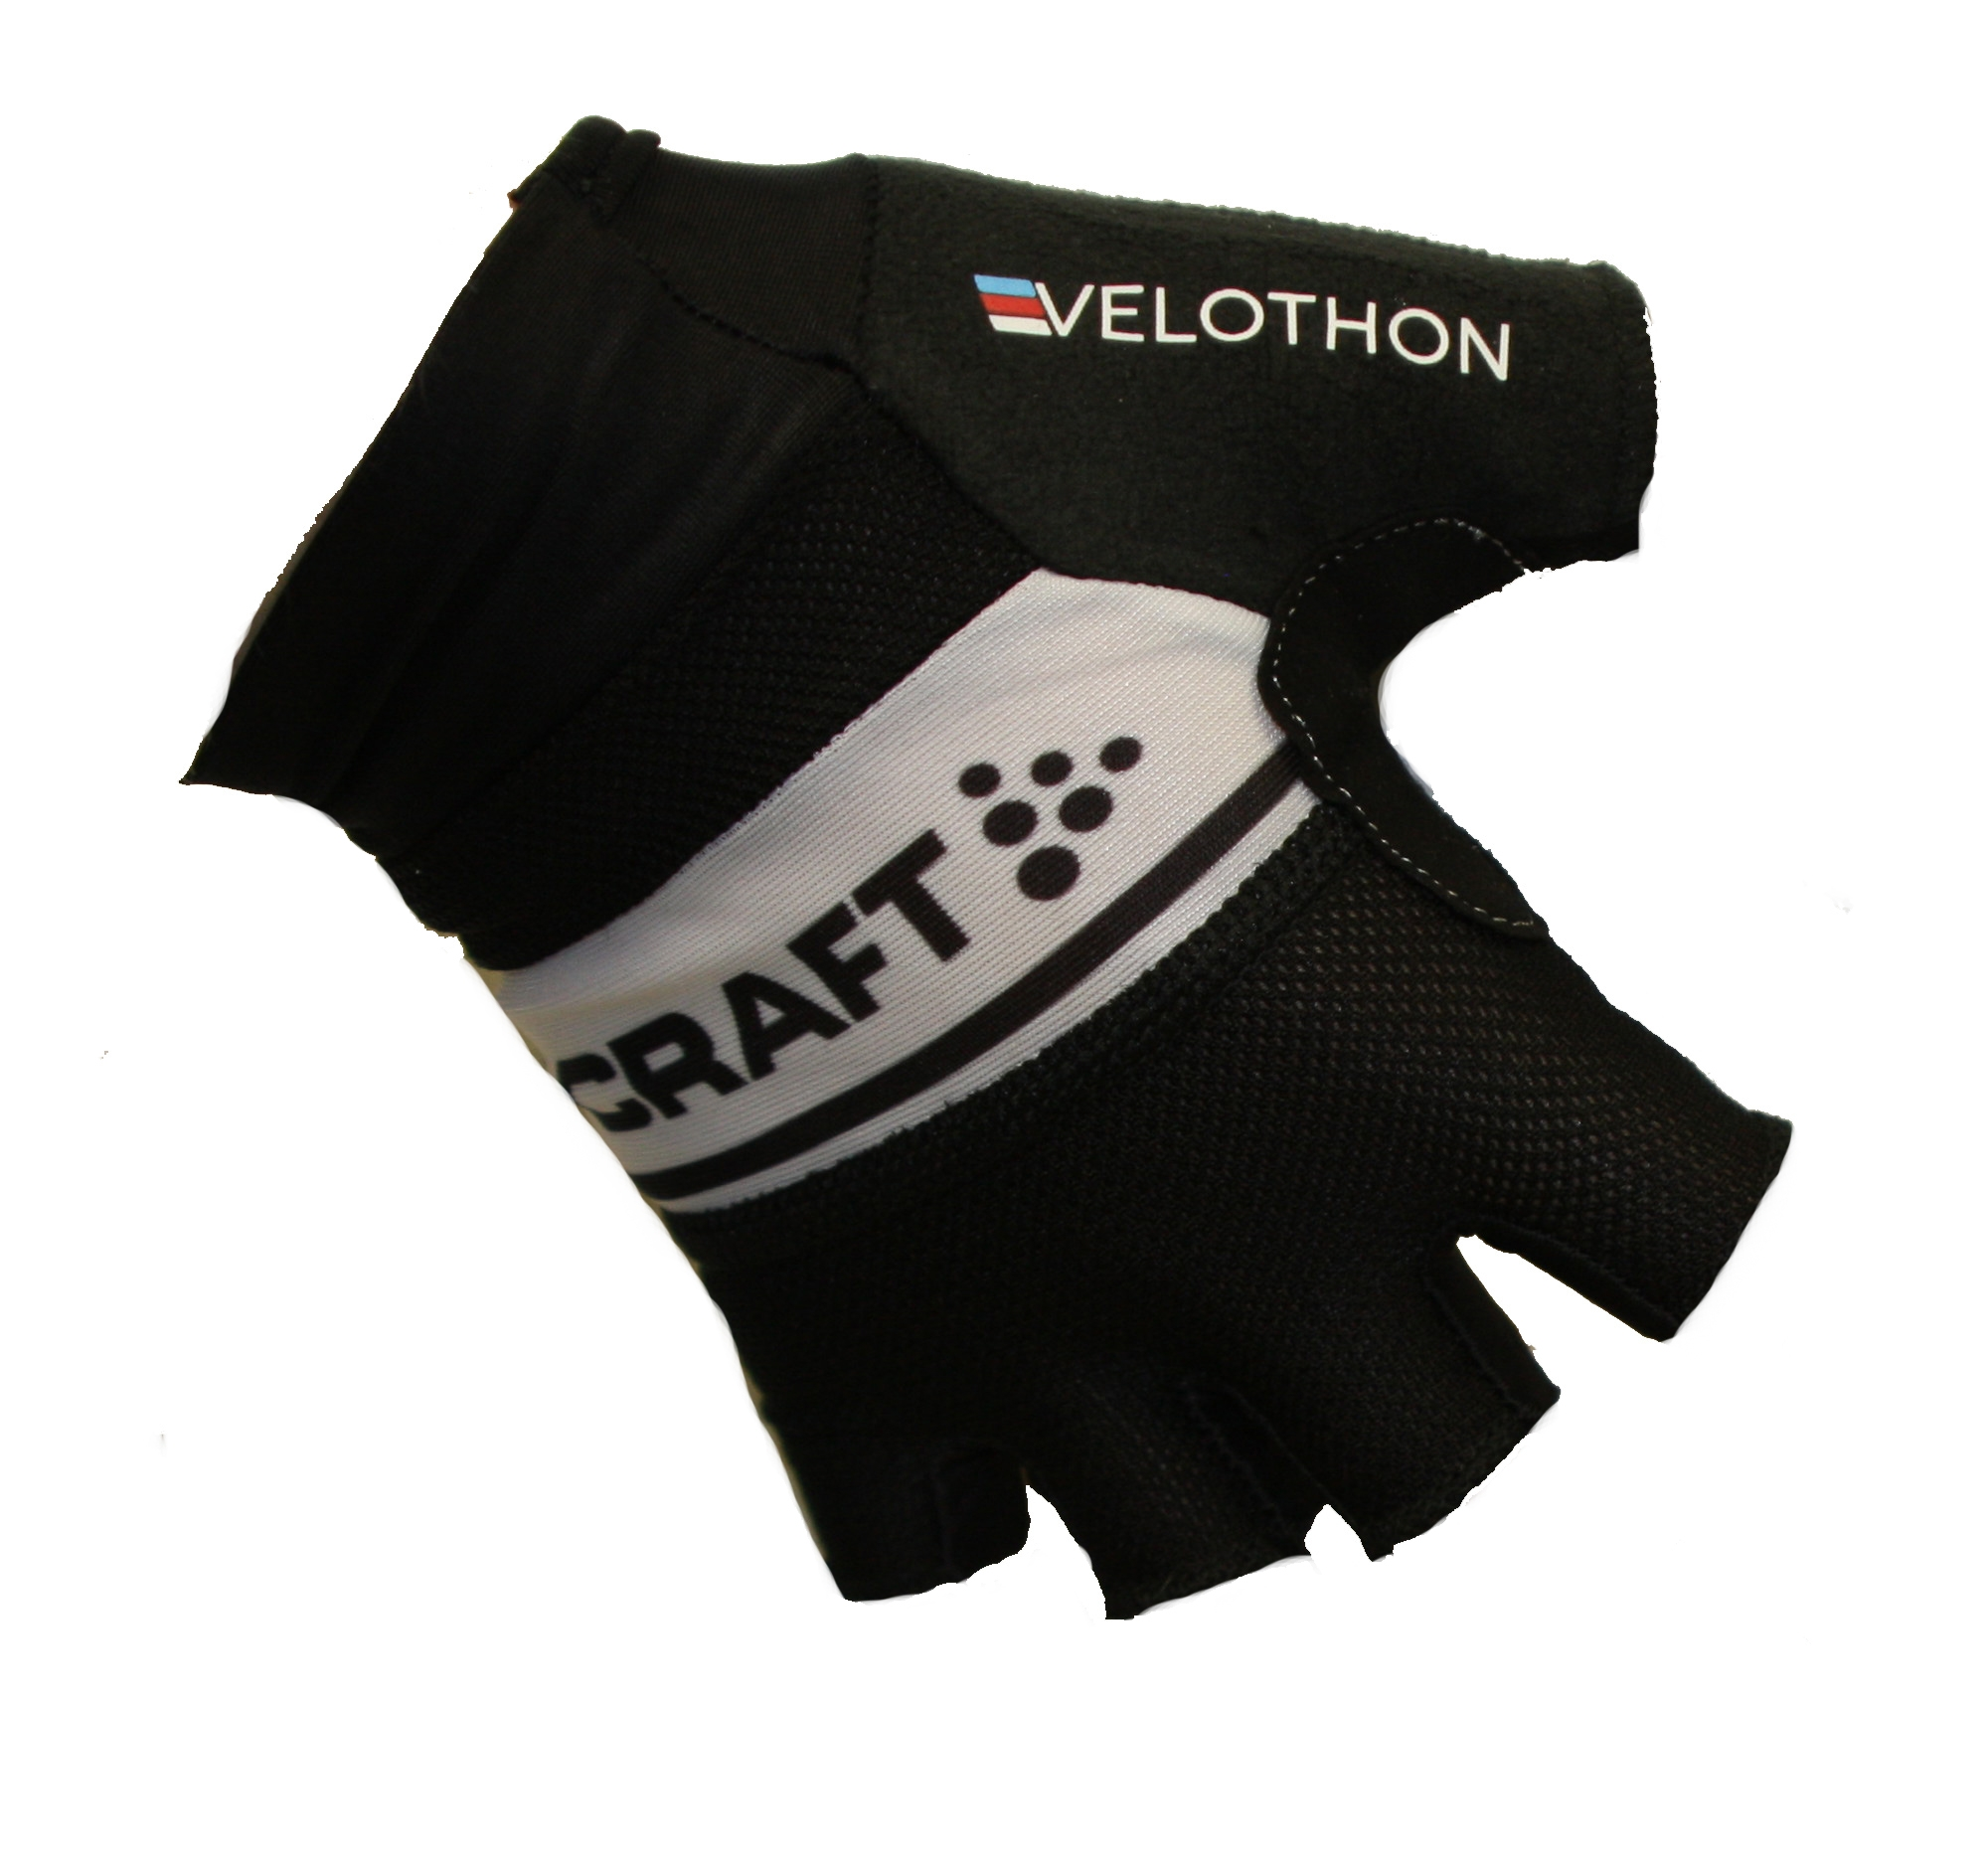 Velothon Women's Cycling Gloves